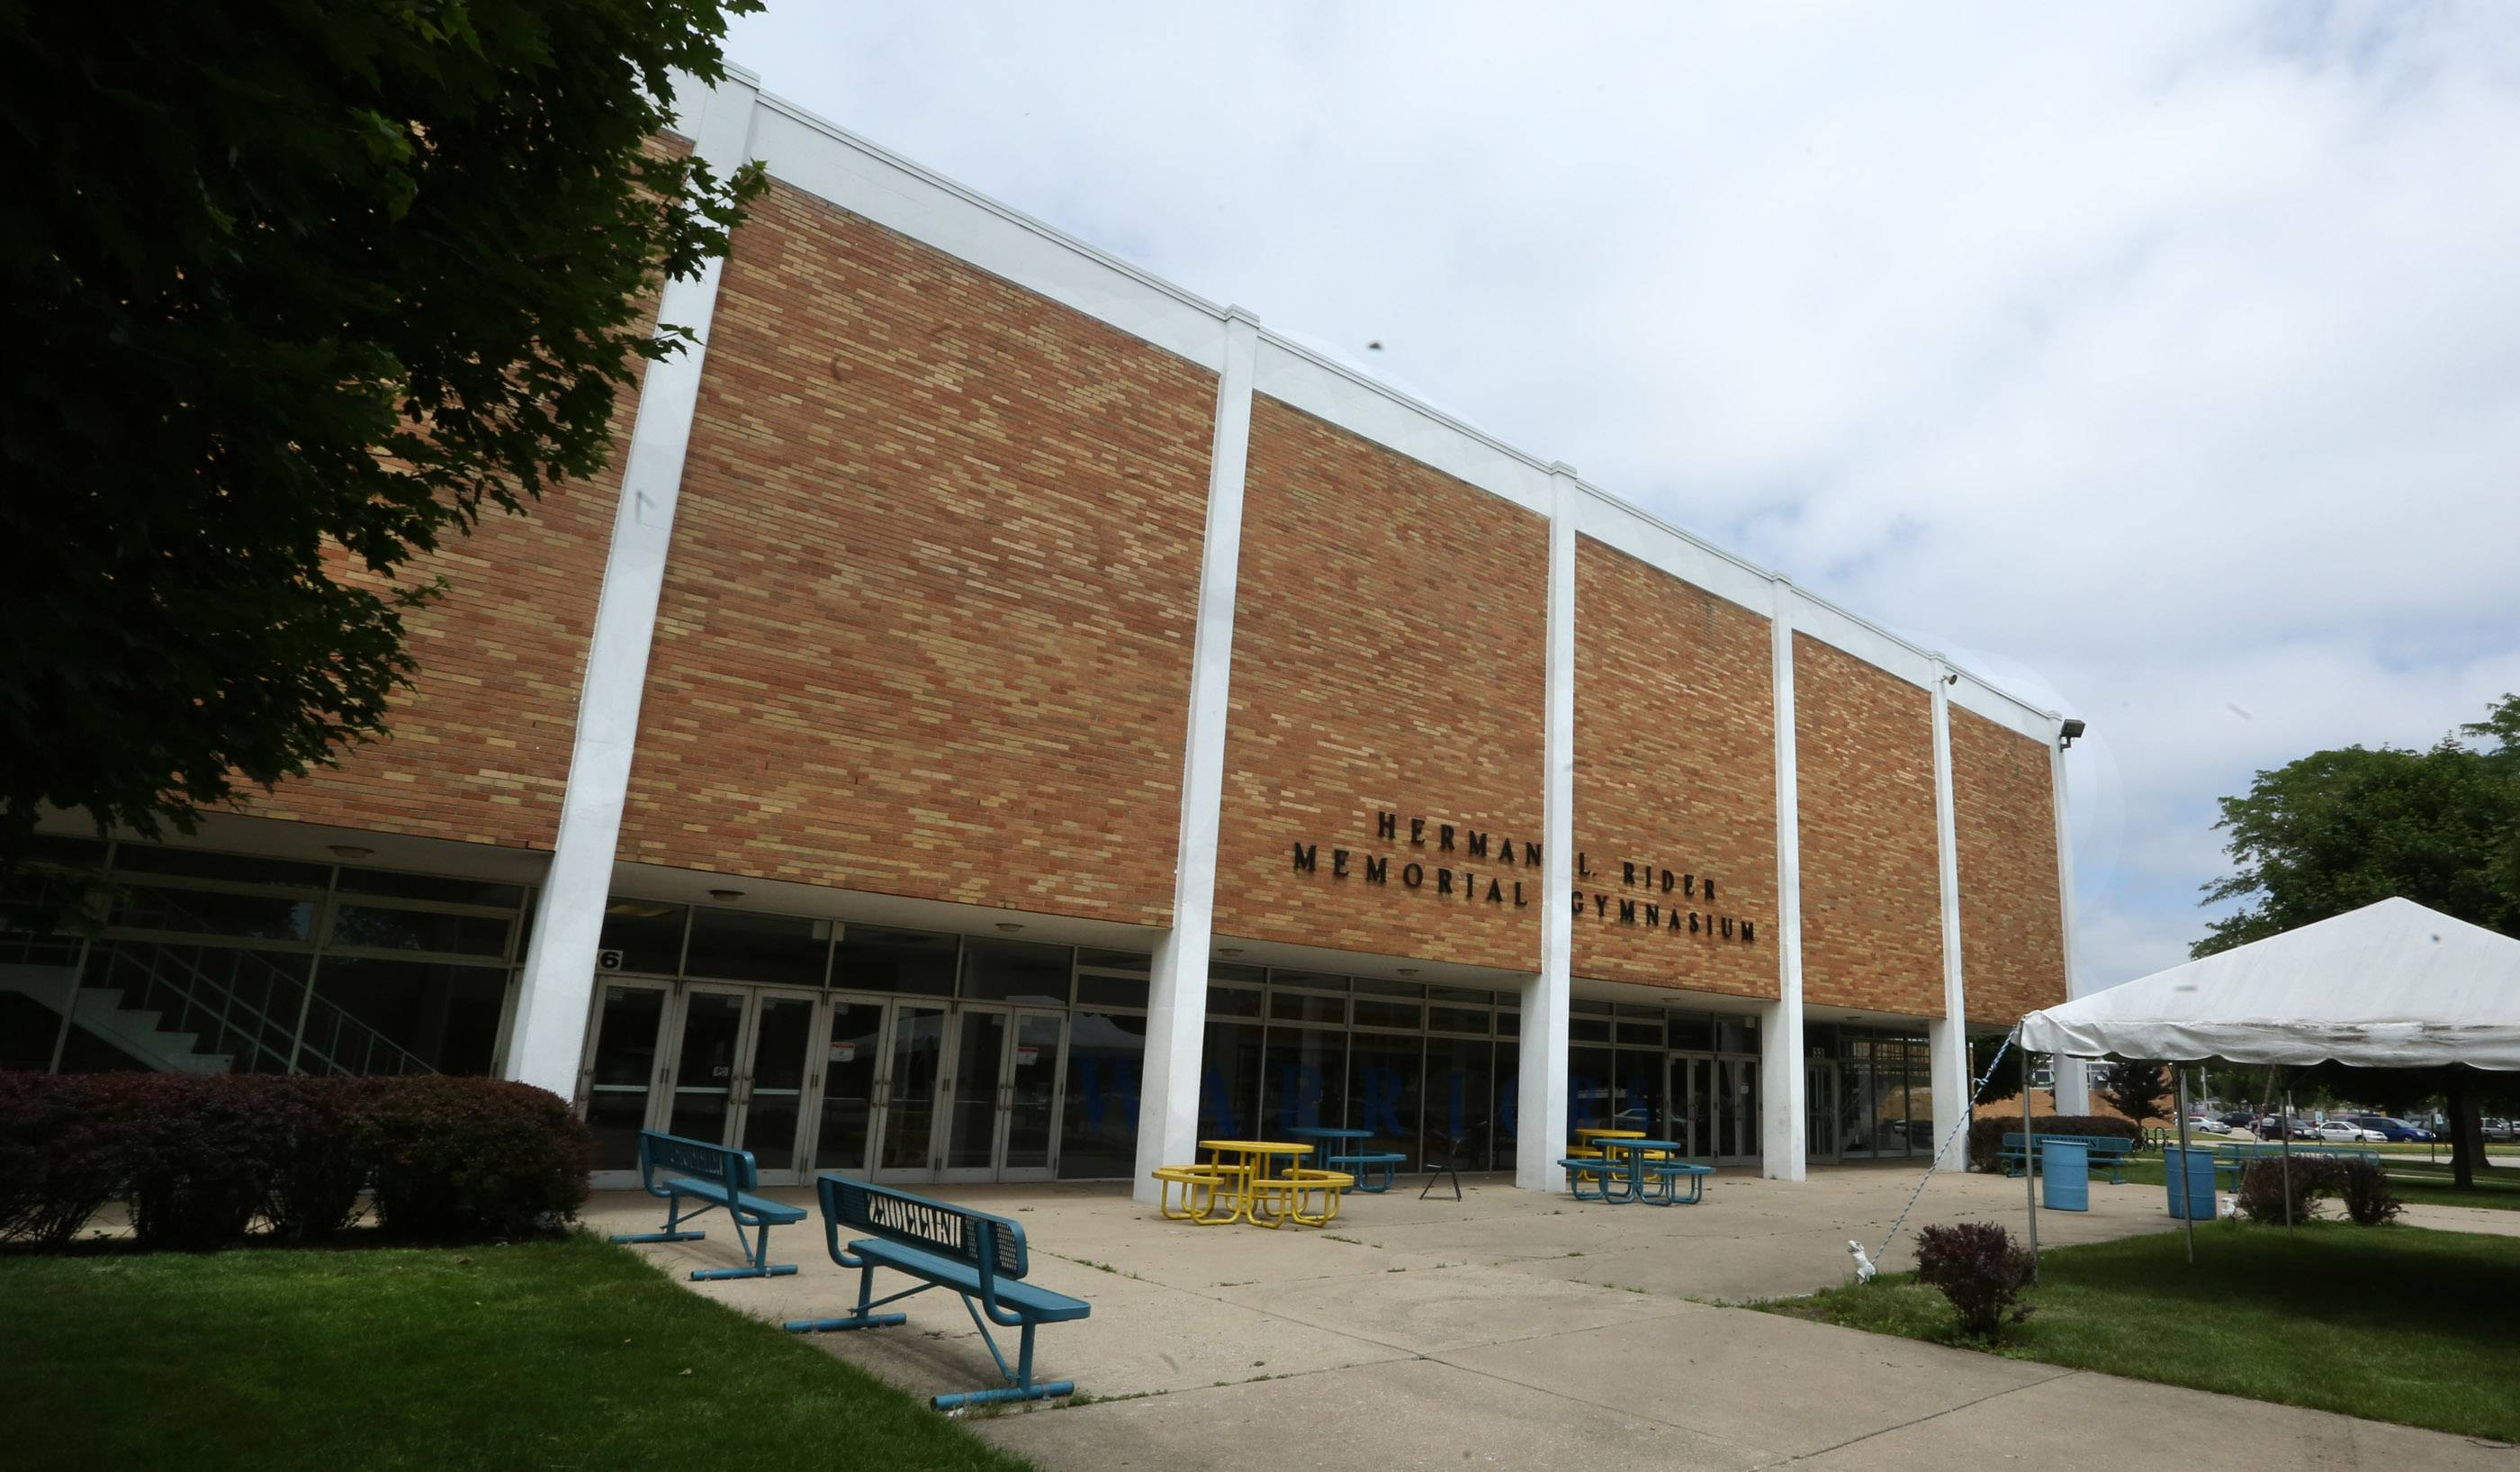 Maine Township High School District 207 officials are planning to build a $9.3 million addition to the existing spectator gym at Maine West High School in Des Plaines.